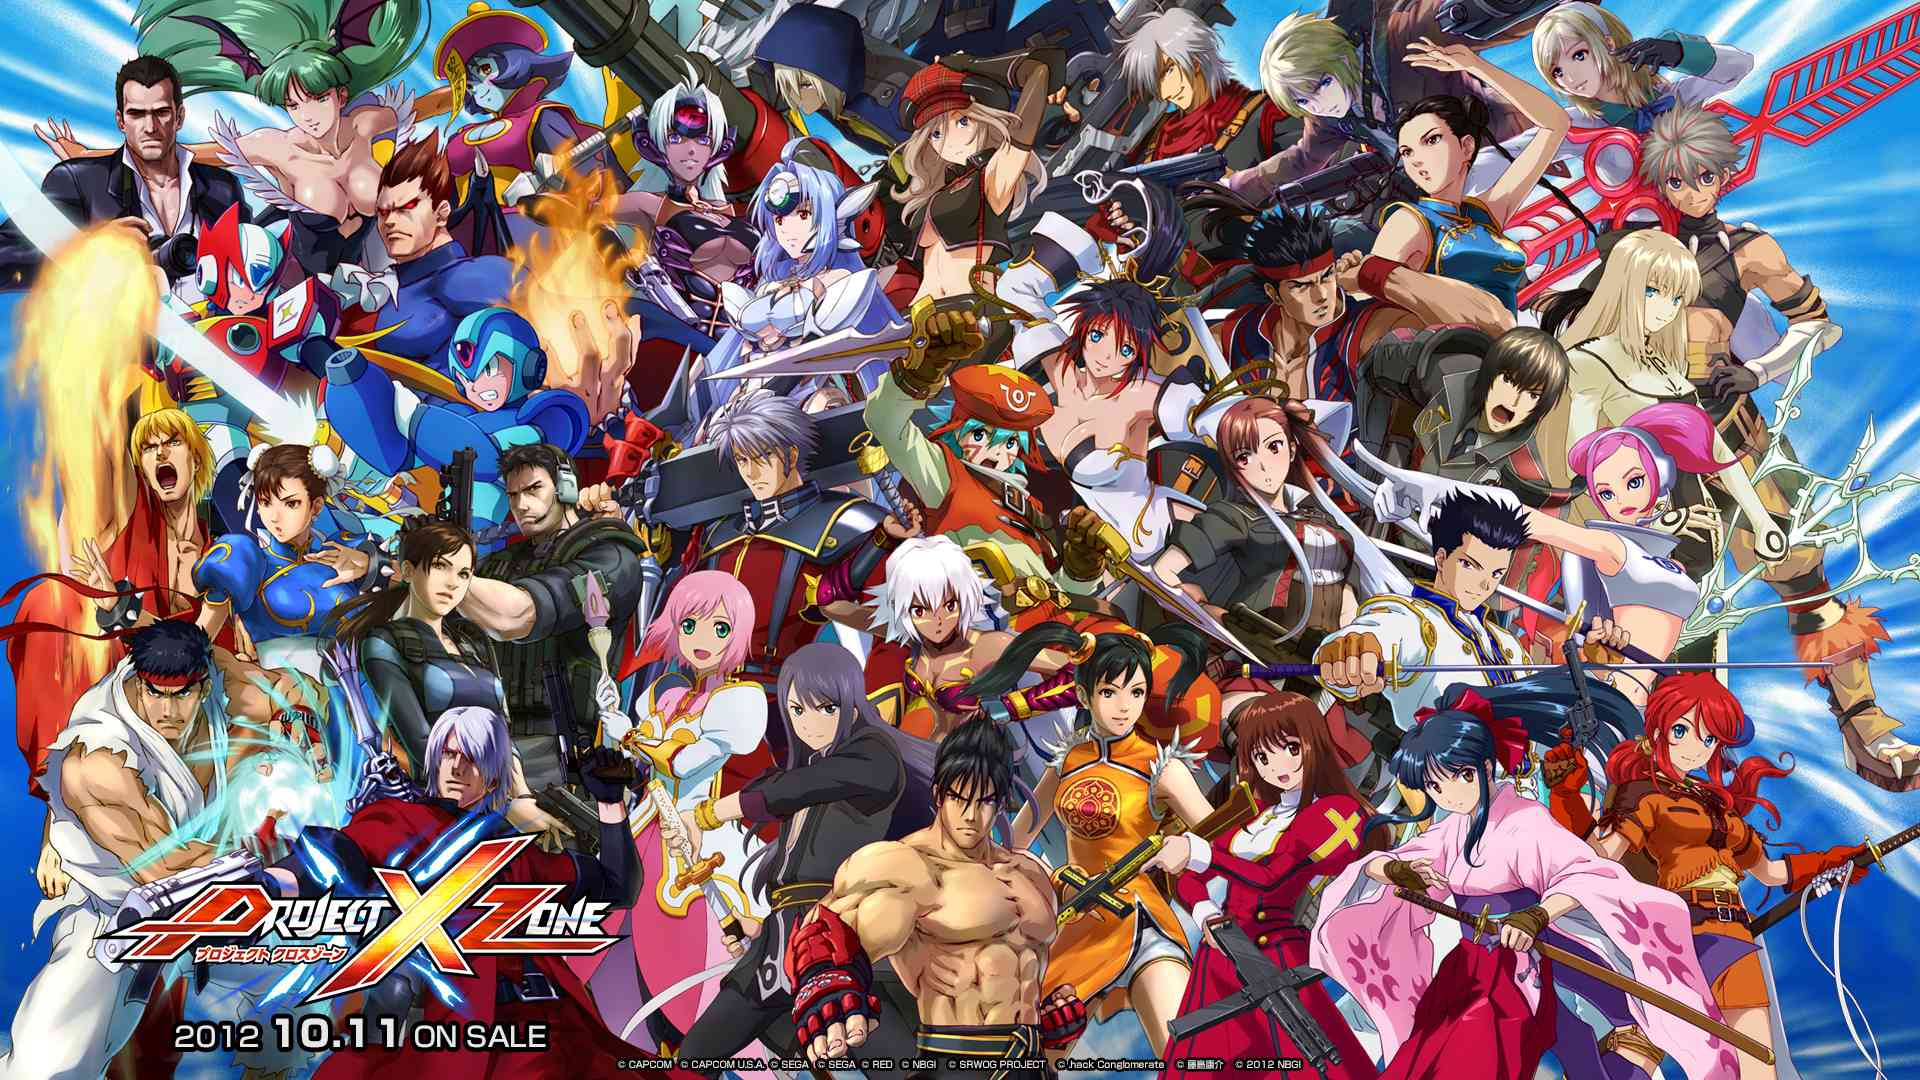 2nd demo for Project X Zone in July